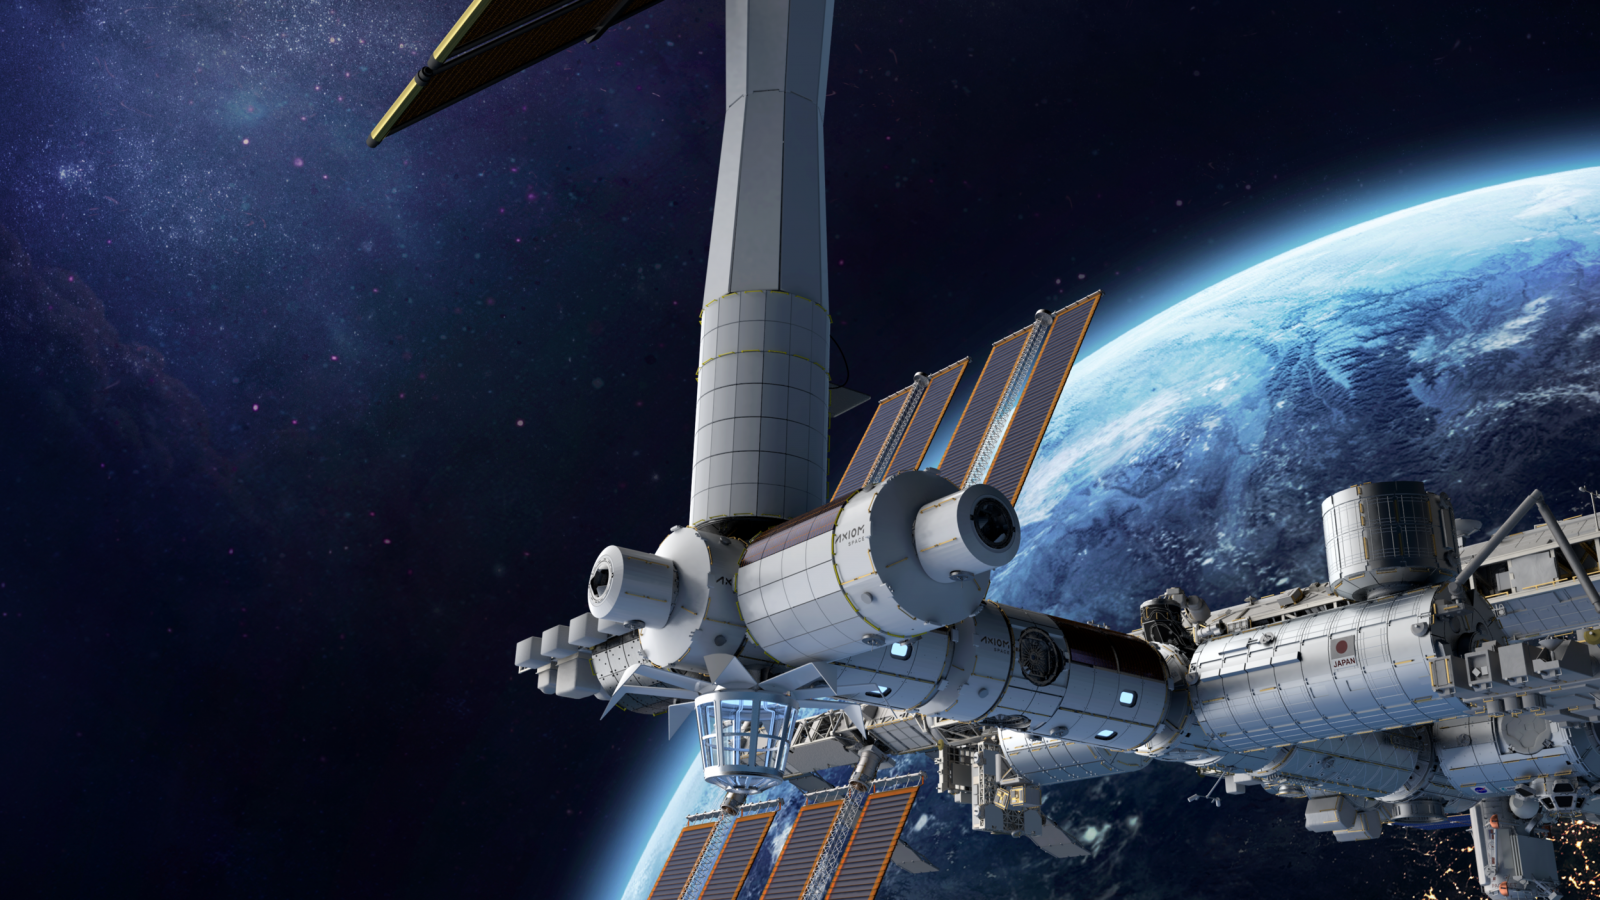 A rendering of Axiom Space's proposed commercial modules attached to the ISS. Credit: Axiom Space